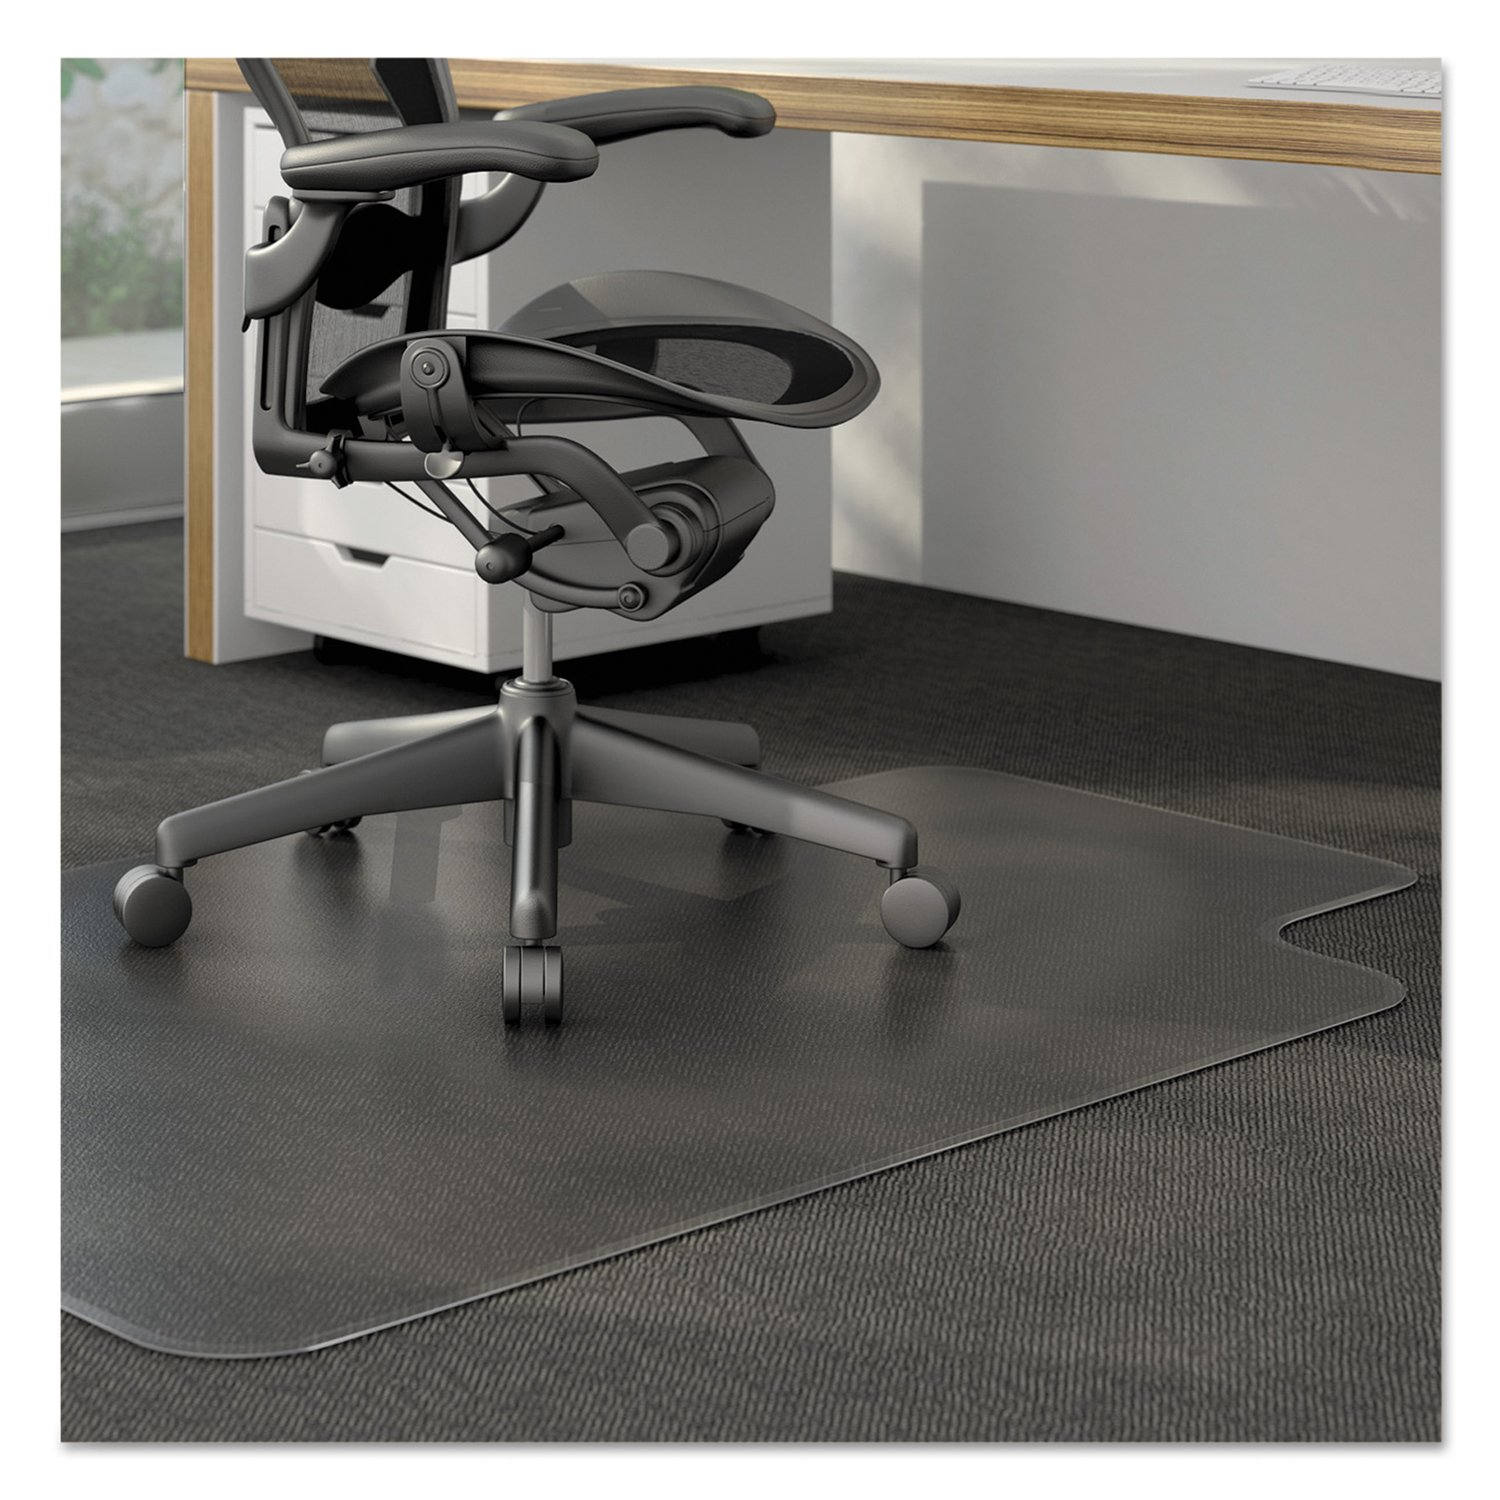 Amazoncom Universal Cleated Chair Mat For Low And Medium - Computer chair mat for carpet